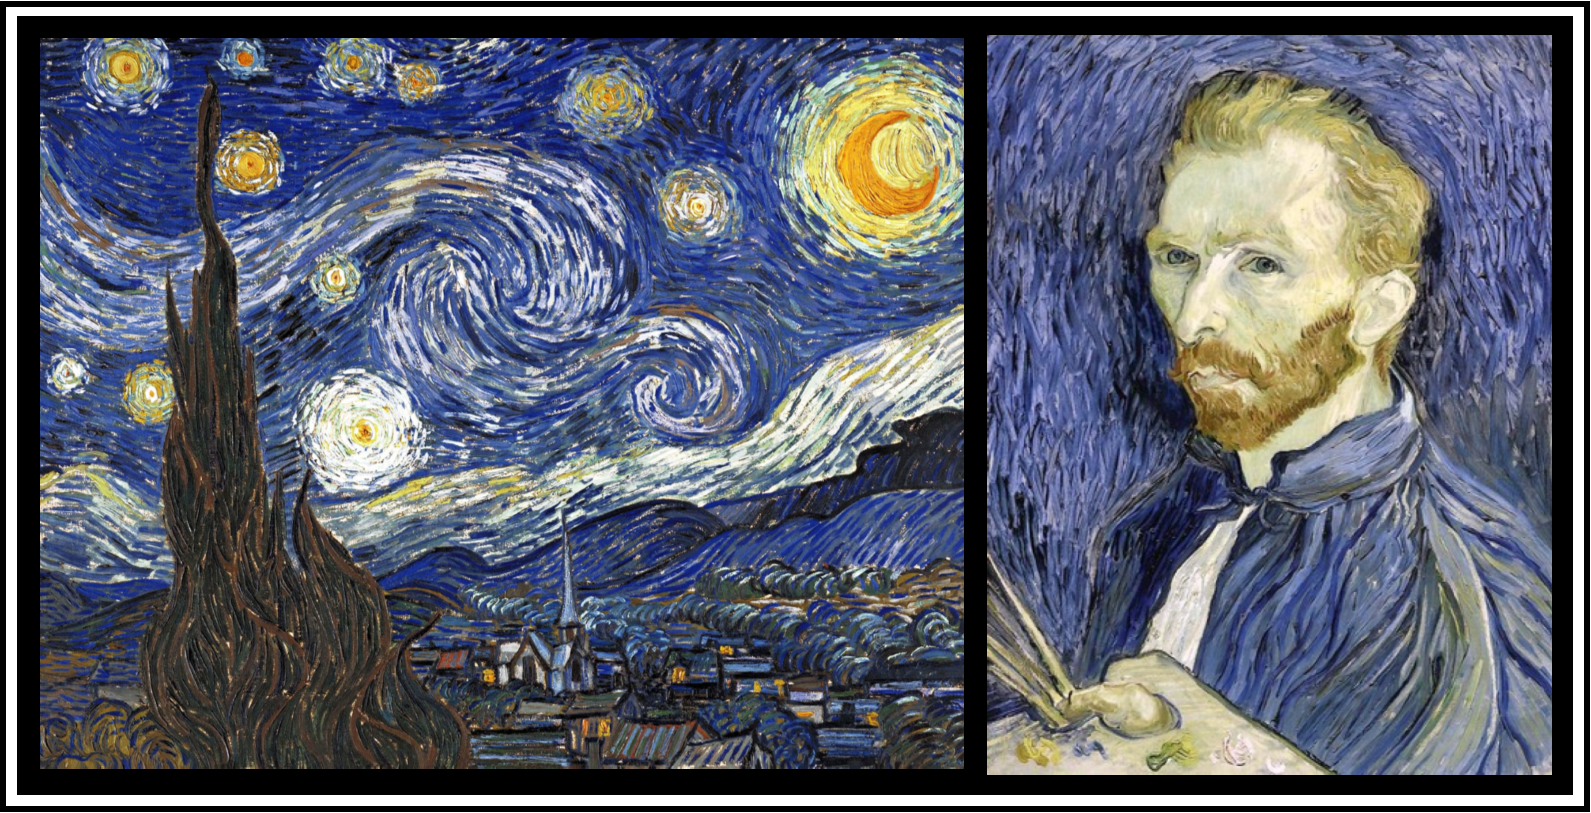 Vincent van Gogh: Through the Eyes of the Artist